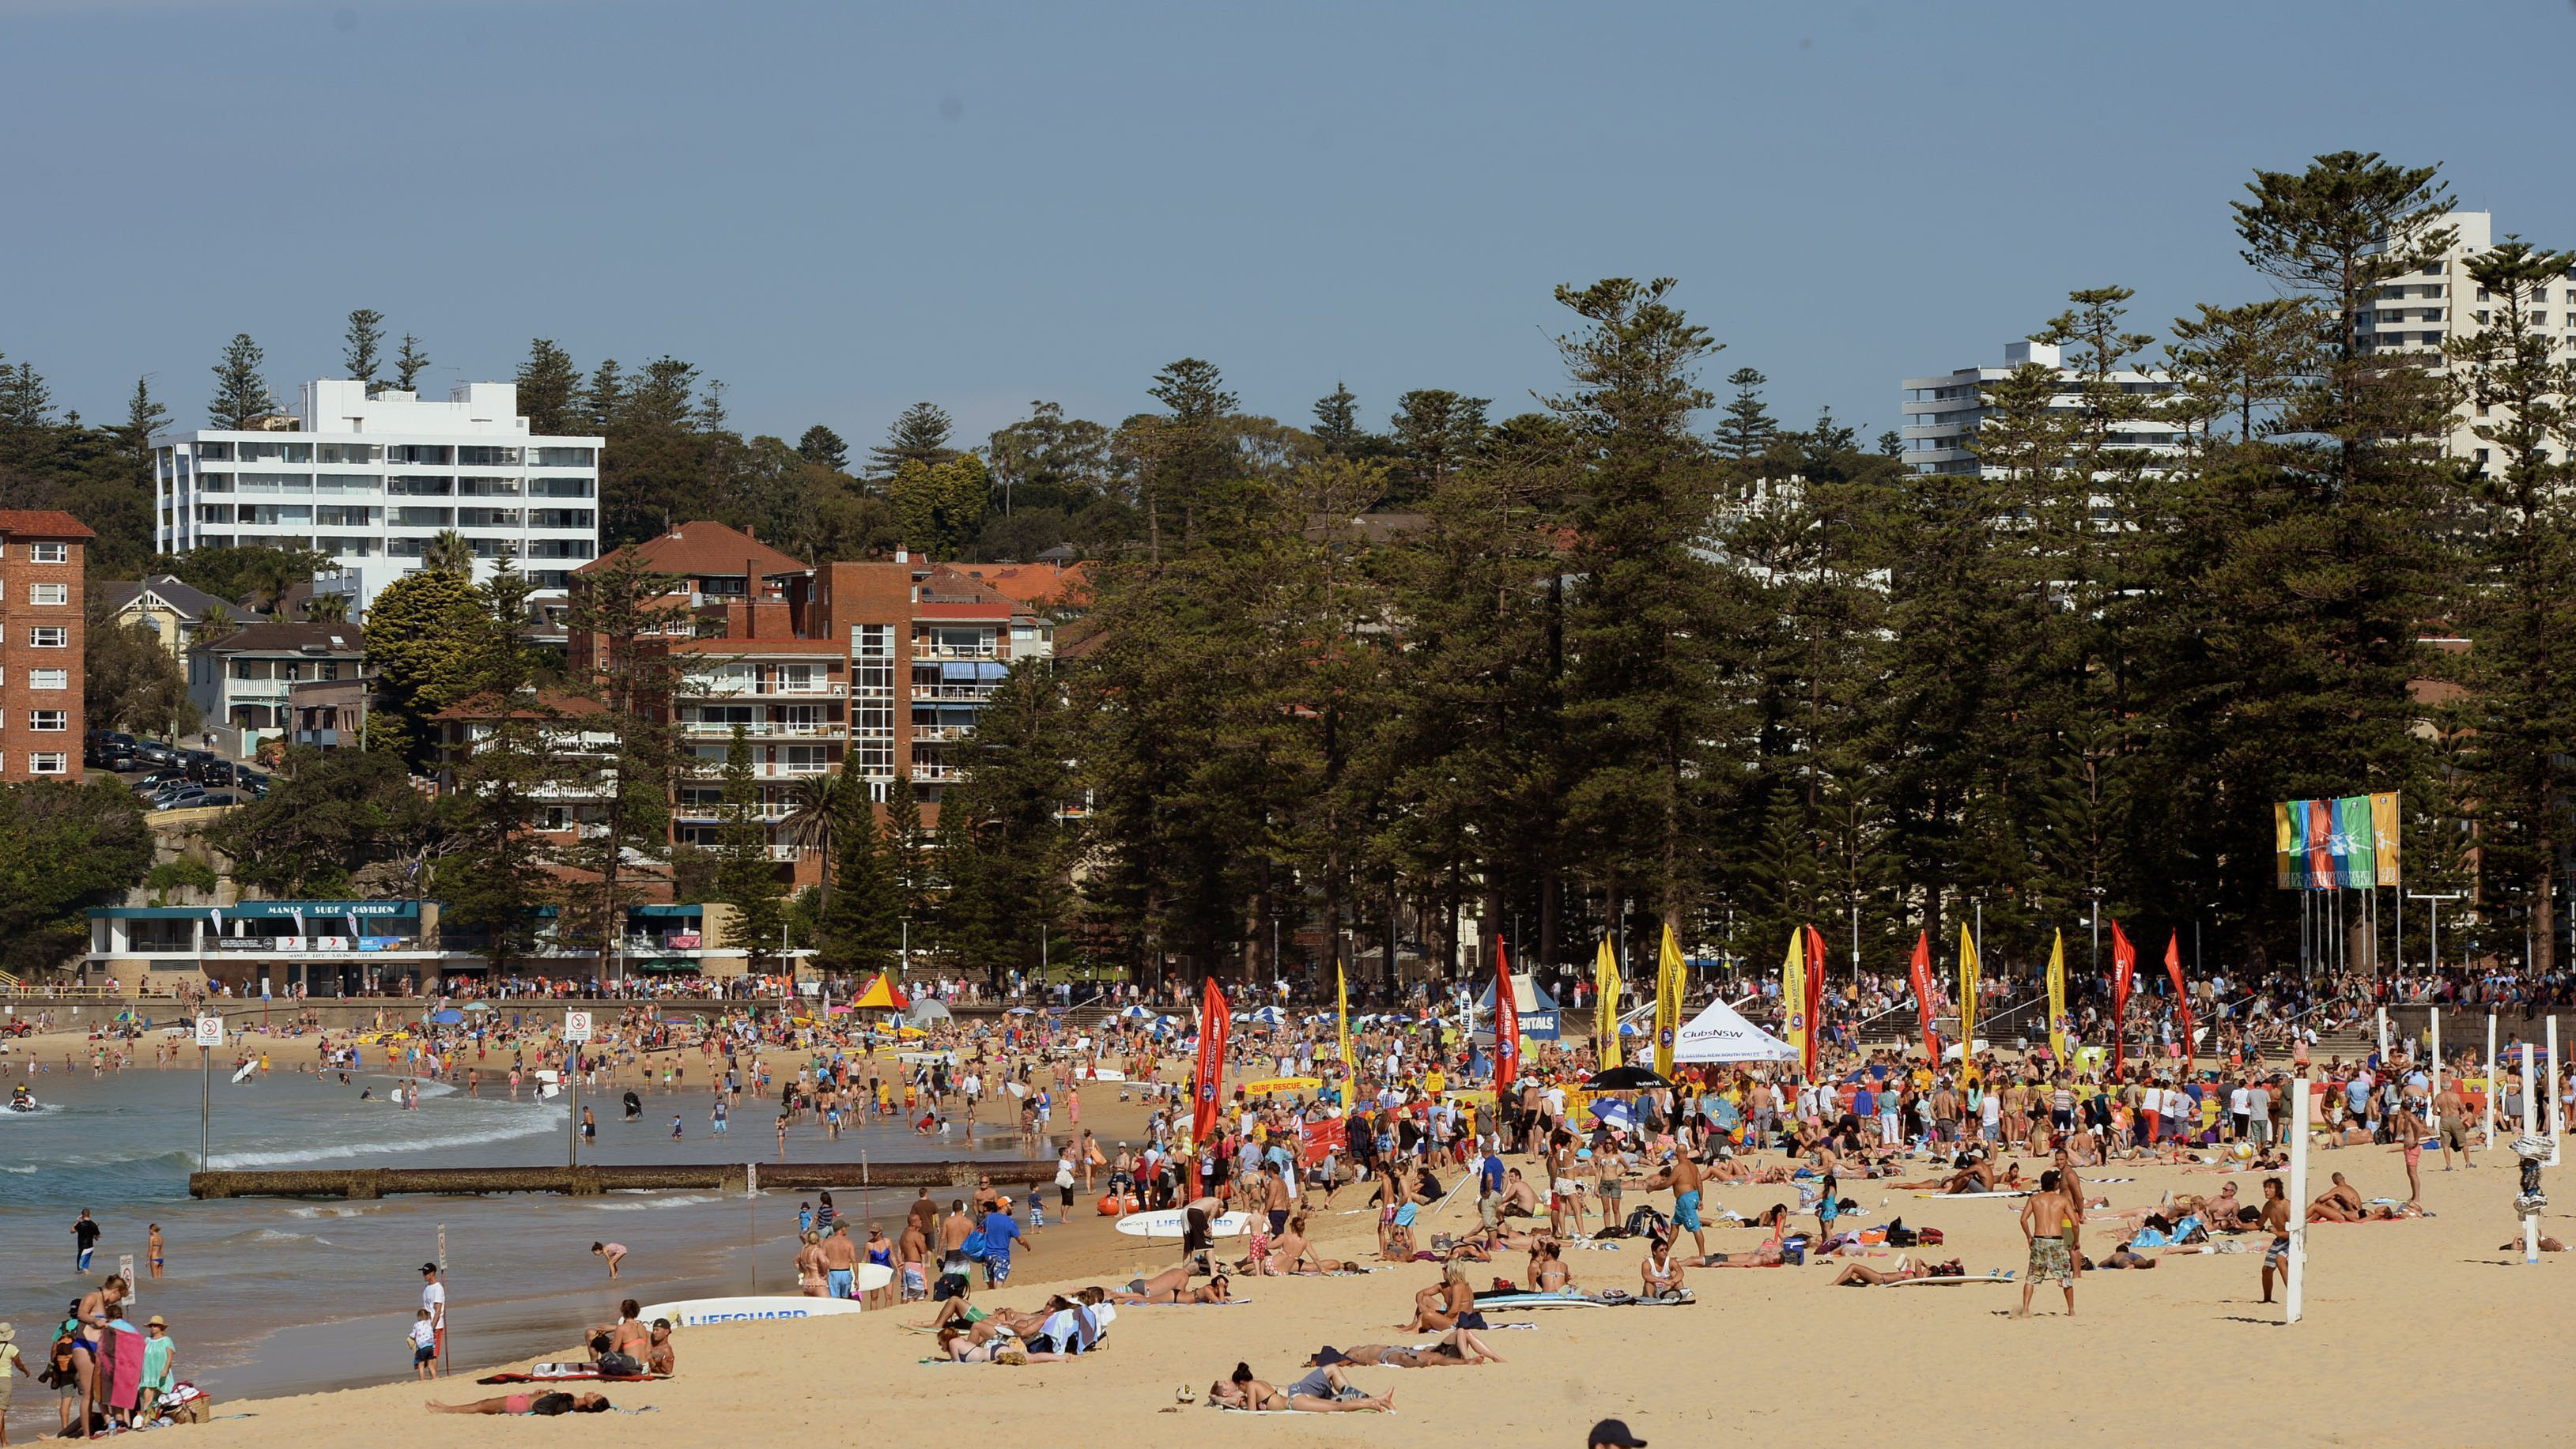 Surf webcams hacked and aimed at sunbathing women at Manly beach